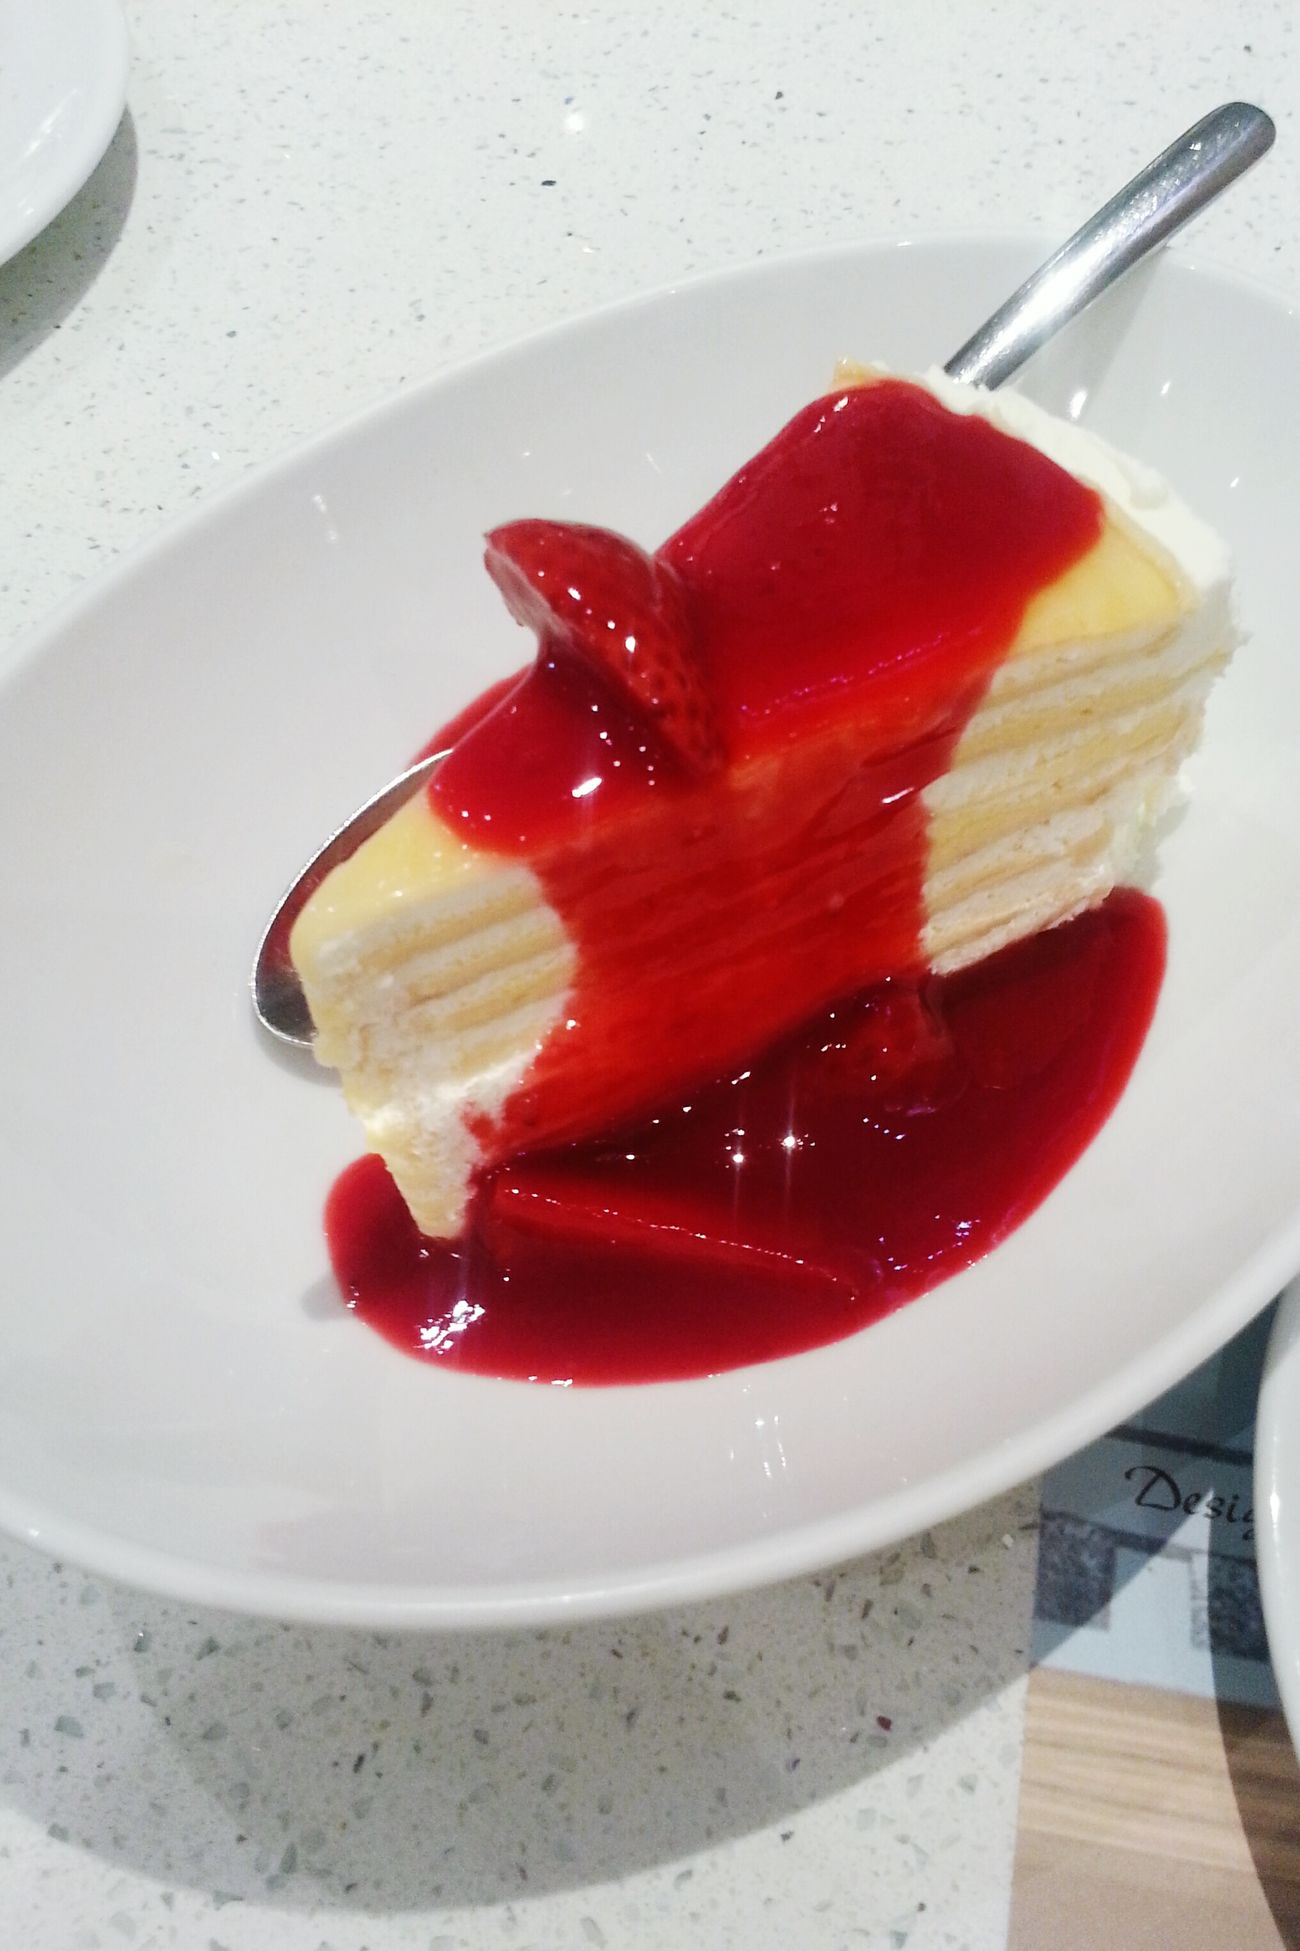 Time For Dessert! Crape Cake Stawberry Sauce Teatime☕️ CTW